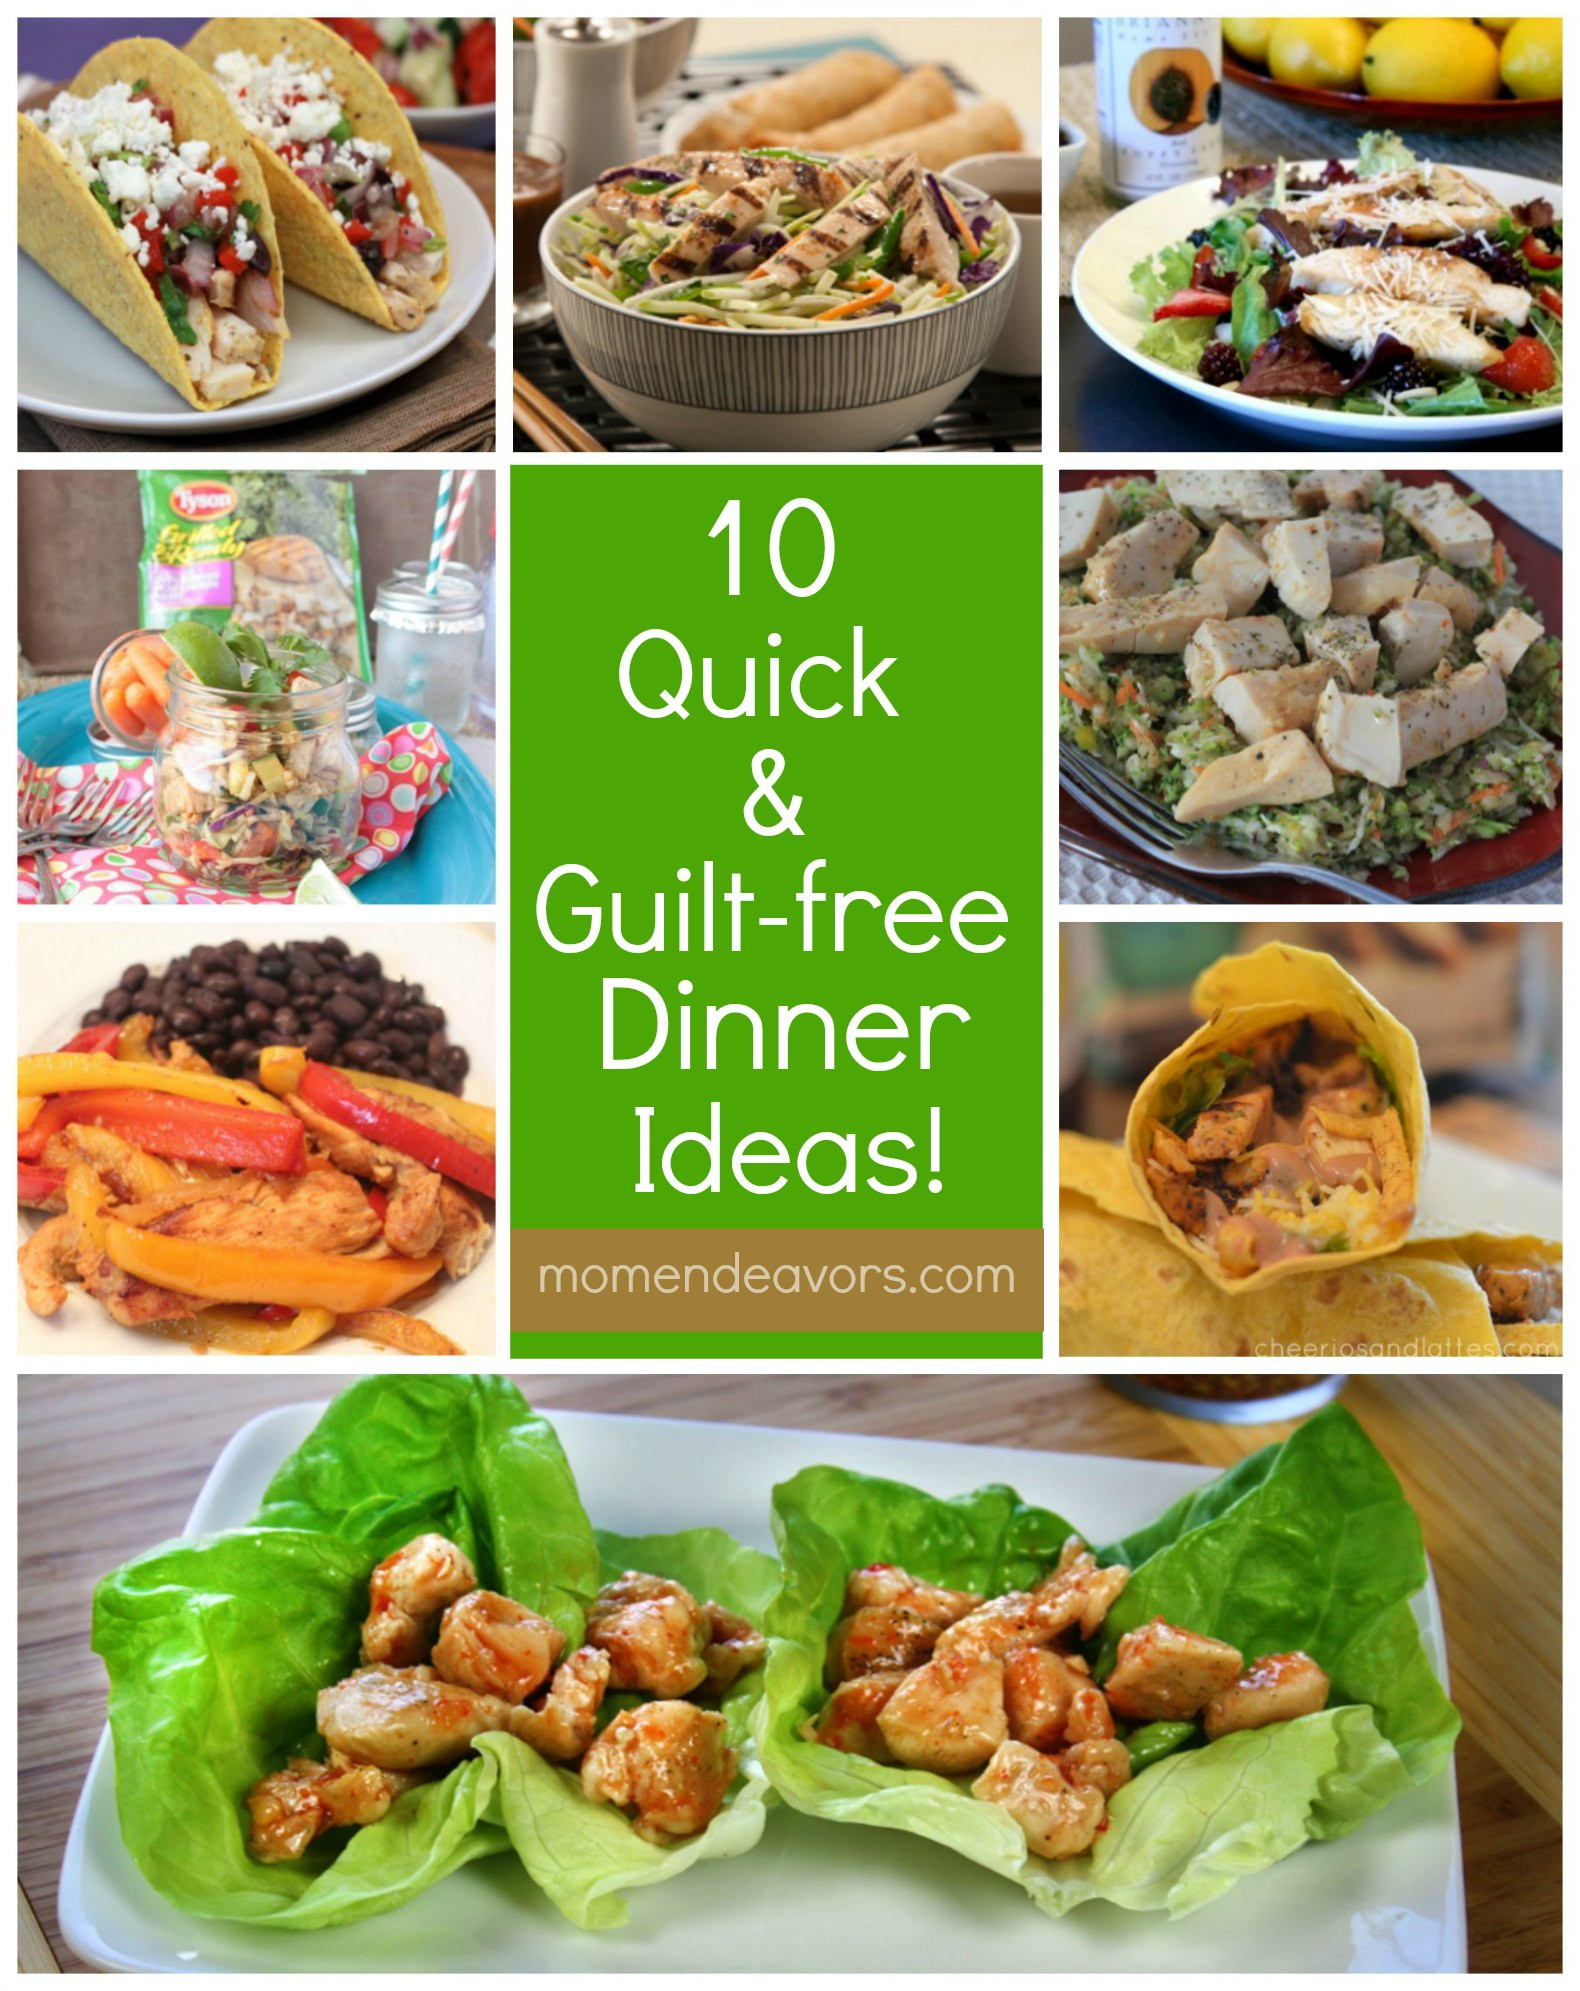 Easy Fast Healthy Dinner Recipes  Ad Sweet 'n Spicy Chicken Lettuce Cups JustAddThis